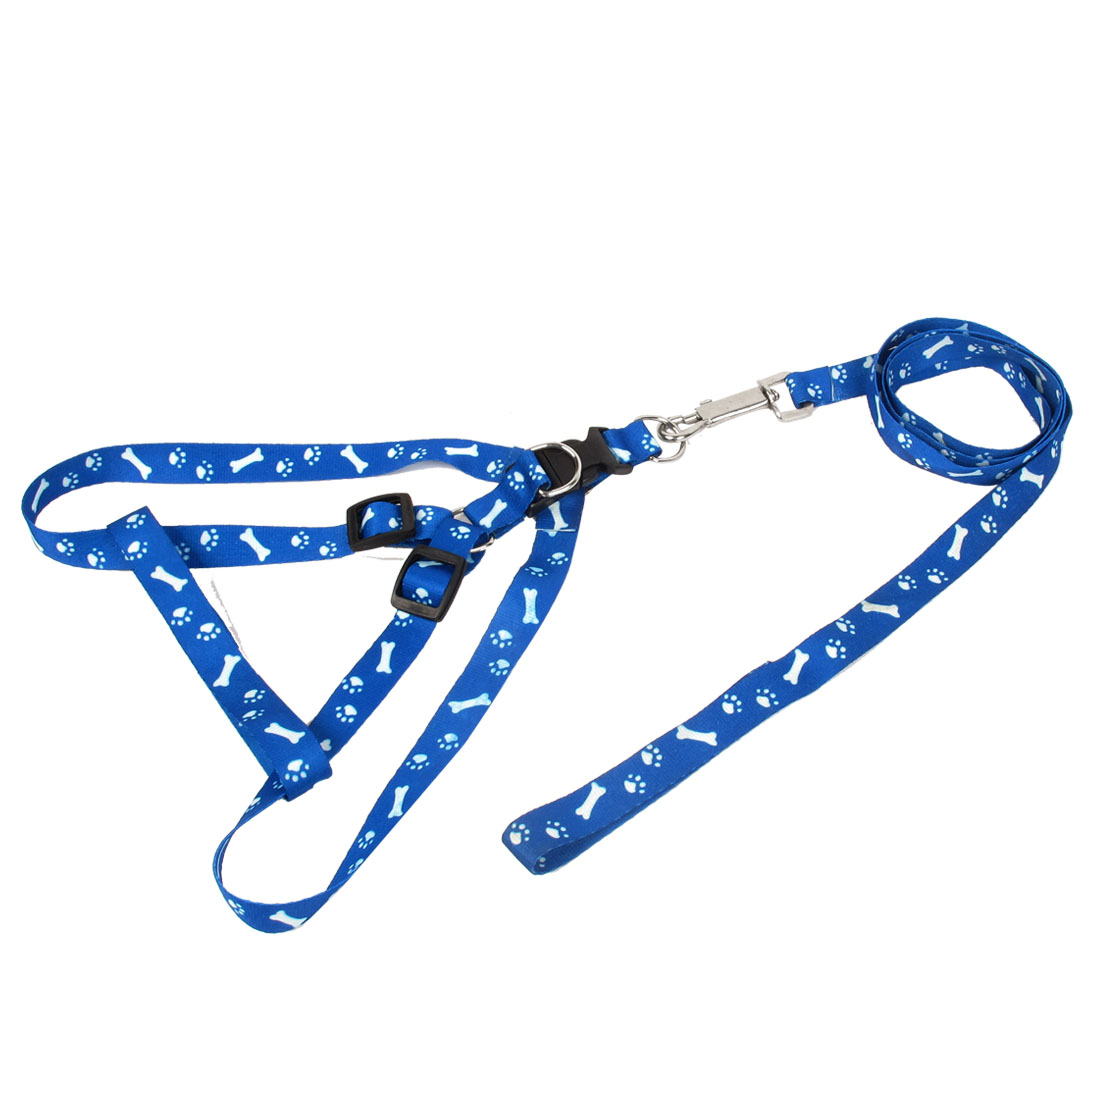 Release Buckle Trigger Hook Pet Cat Puppy Adjustable Belt Harness Leash Blue